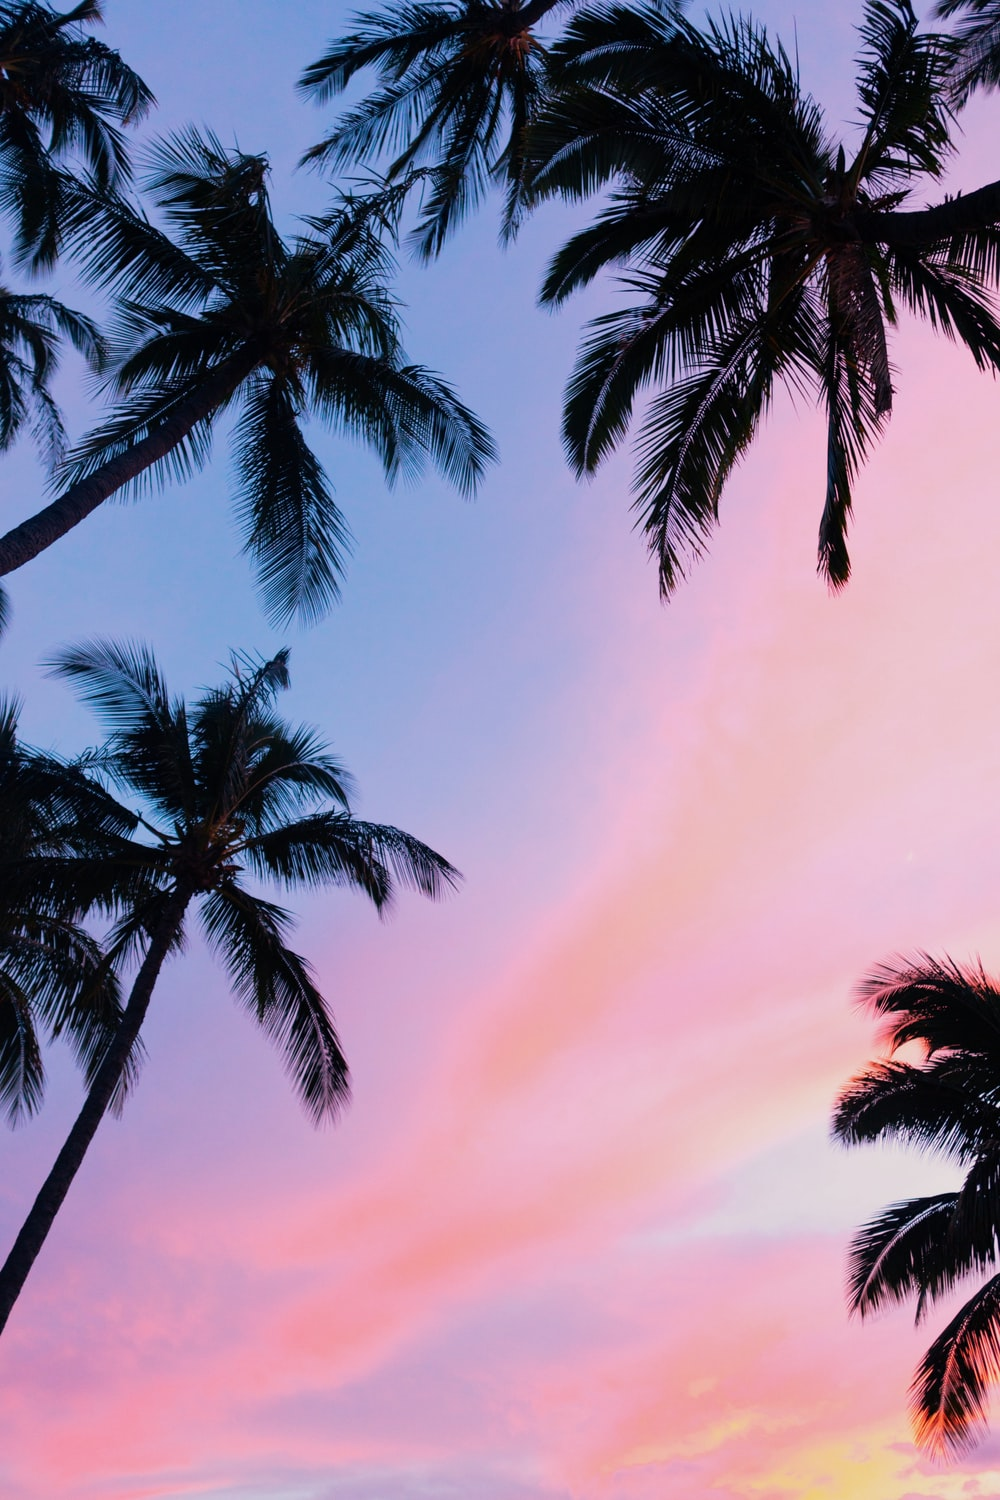 20 Palm Tree Pictures Hd Download Free Images On Unsplash Download all photos and use them even for commercial projects. 20 palm tree pictures hd download